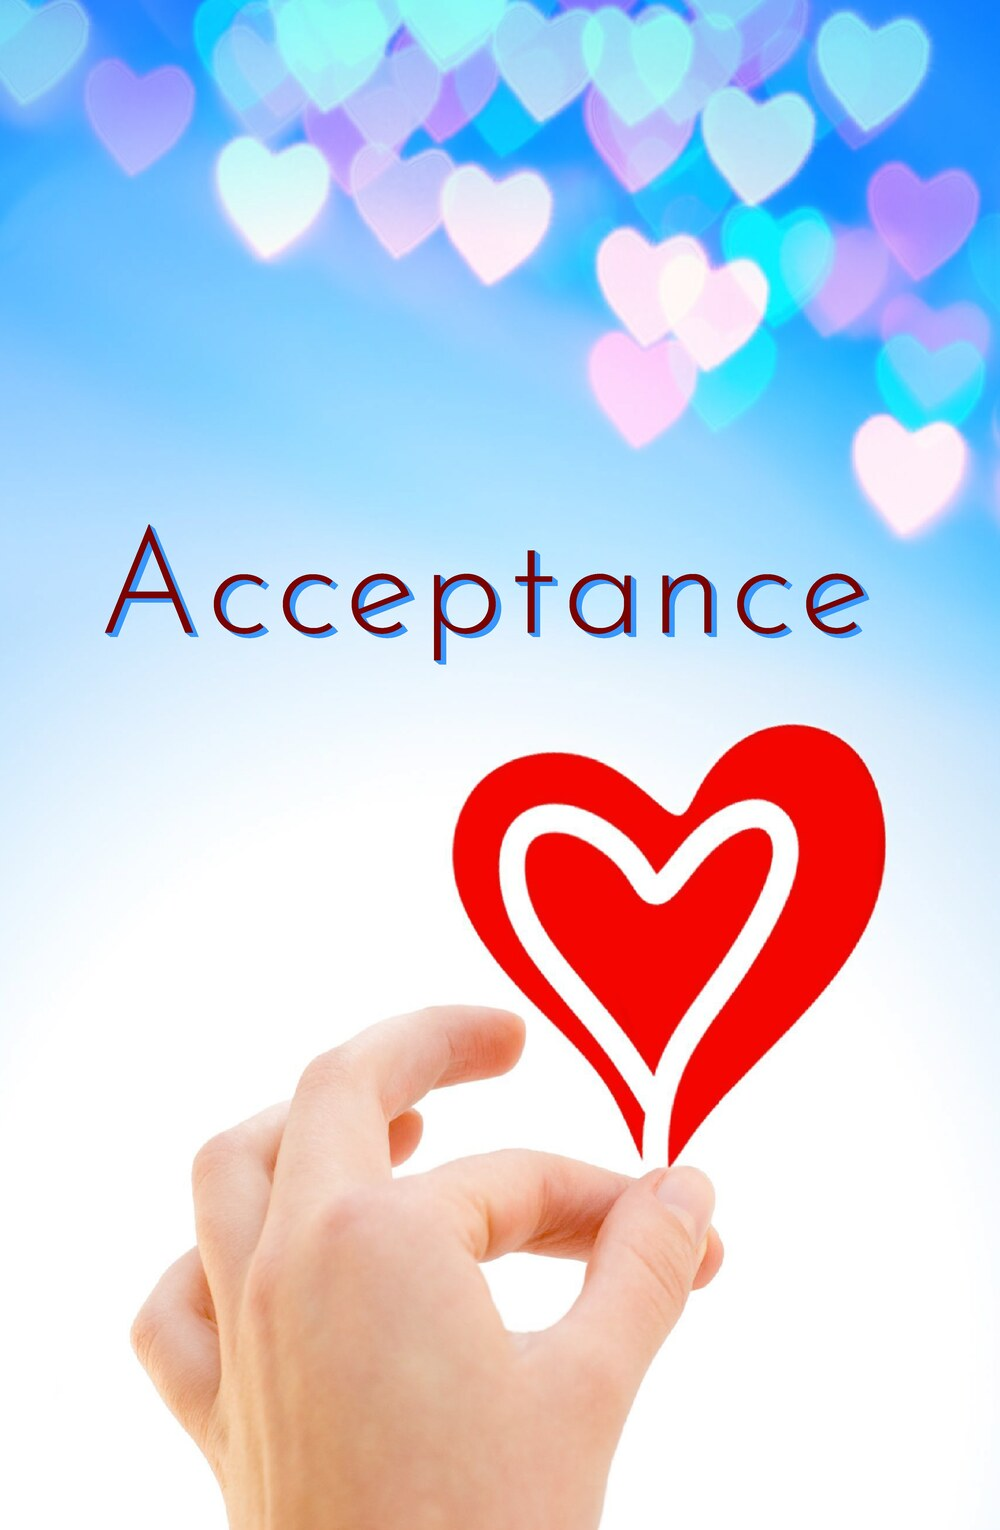 L7115 - Acceptance - Learn How to Expand Your Acceptance of Others